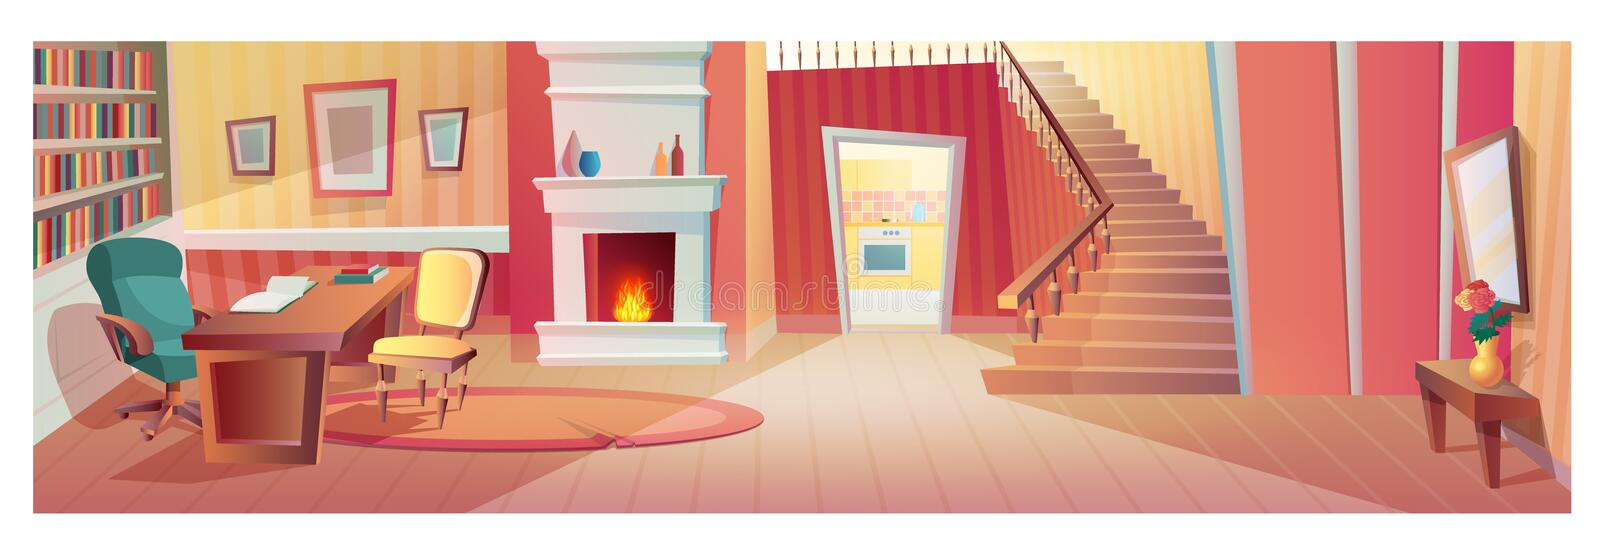 Interior of hallway of room with furniture, accessories. stock illustration